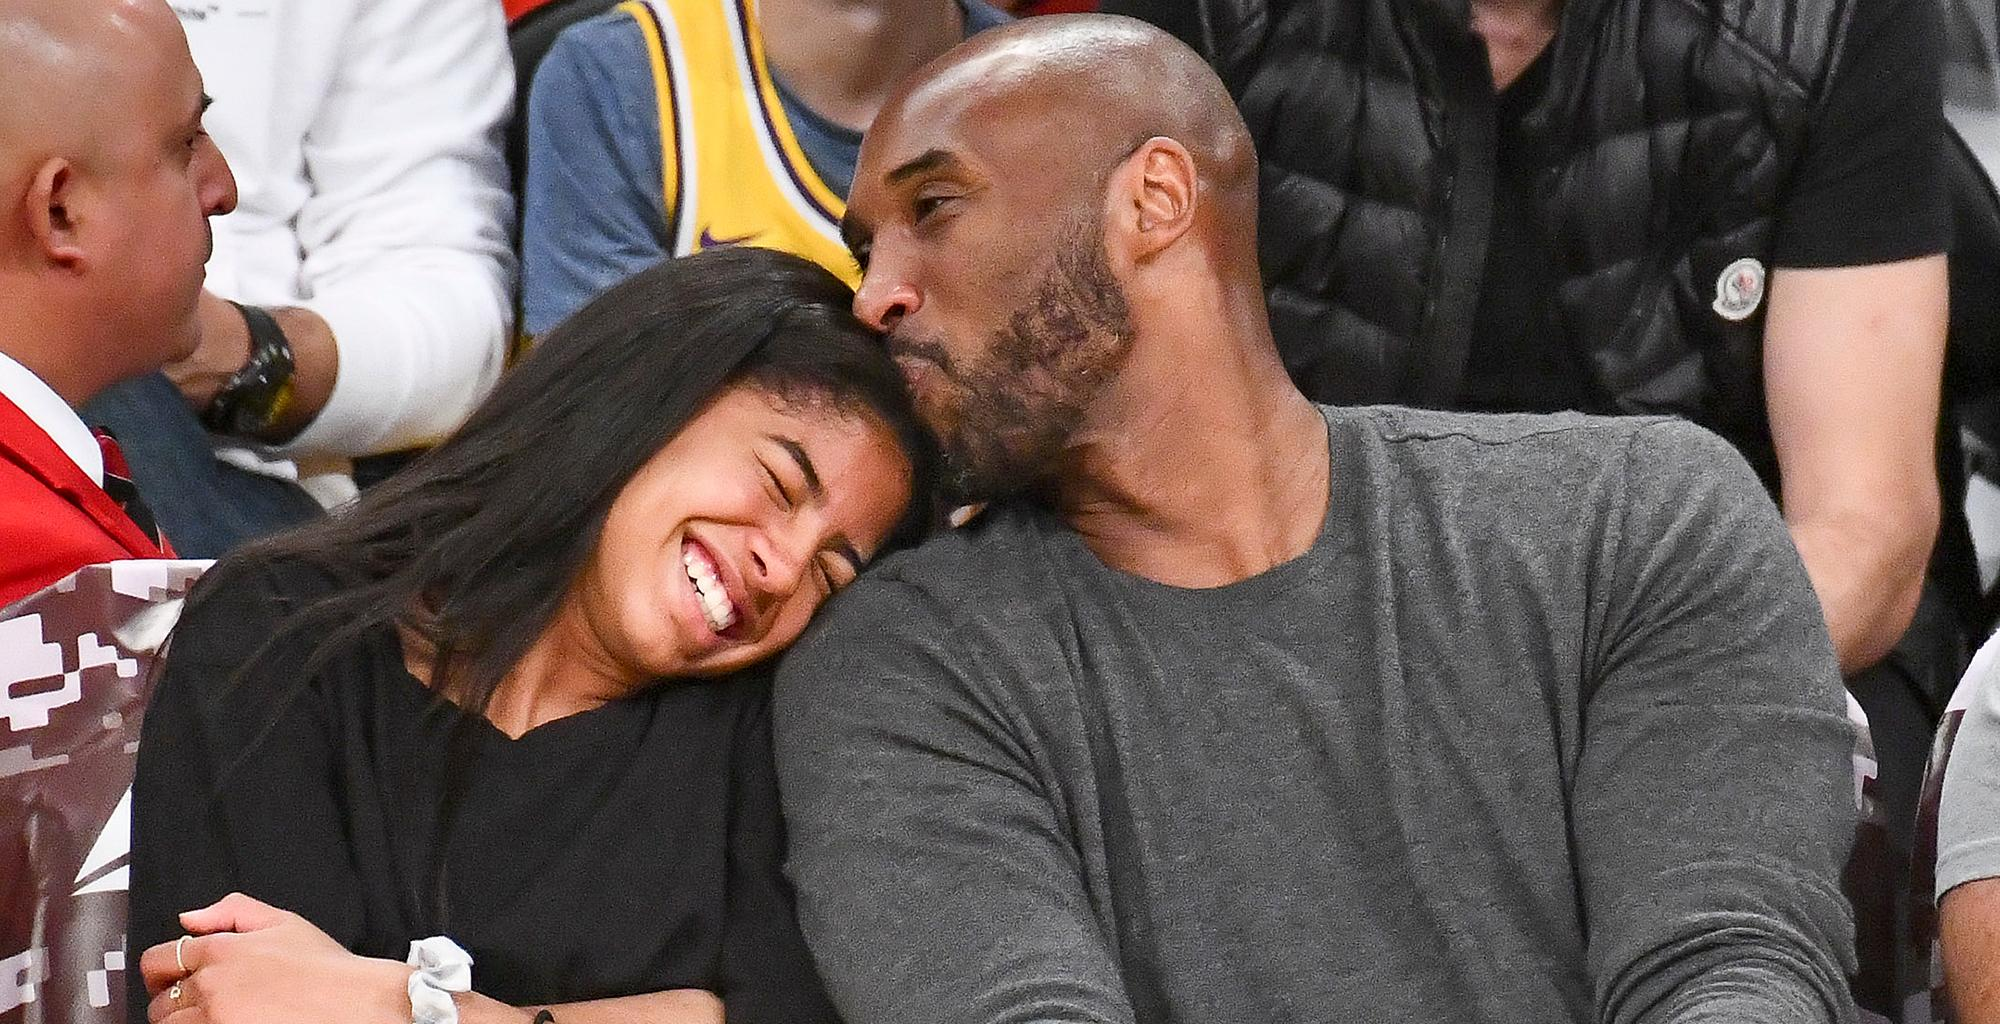 Vanessa Bryant Says 'It Feels Wrong To Accept' Her Husband Kobe And Daughter Gianna Are Gone In Another Heartbreaking Statement